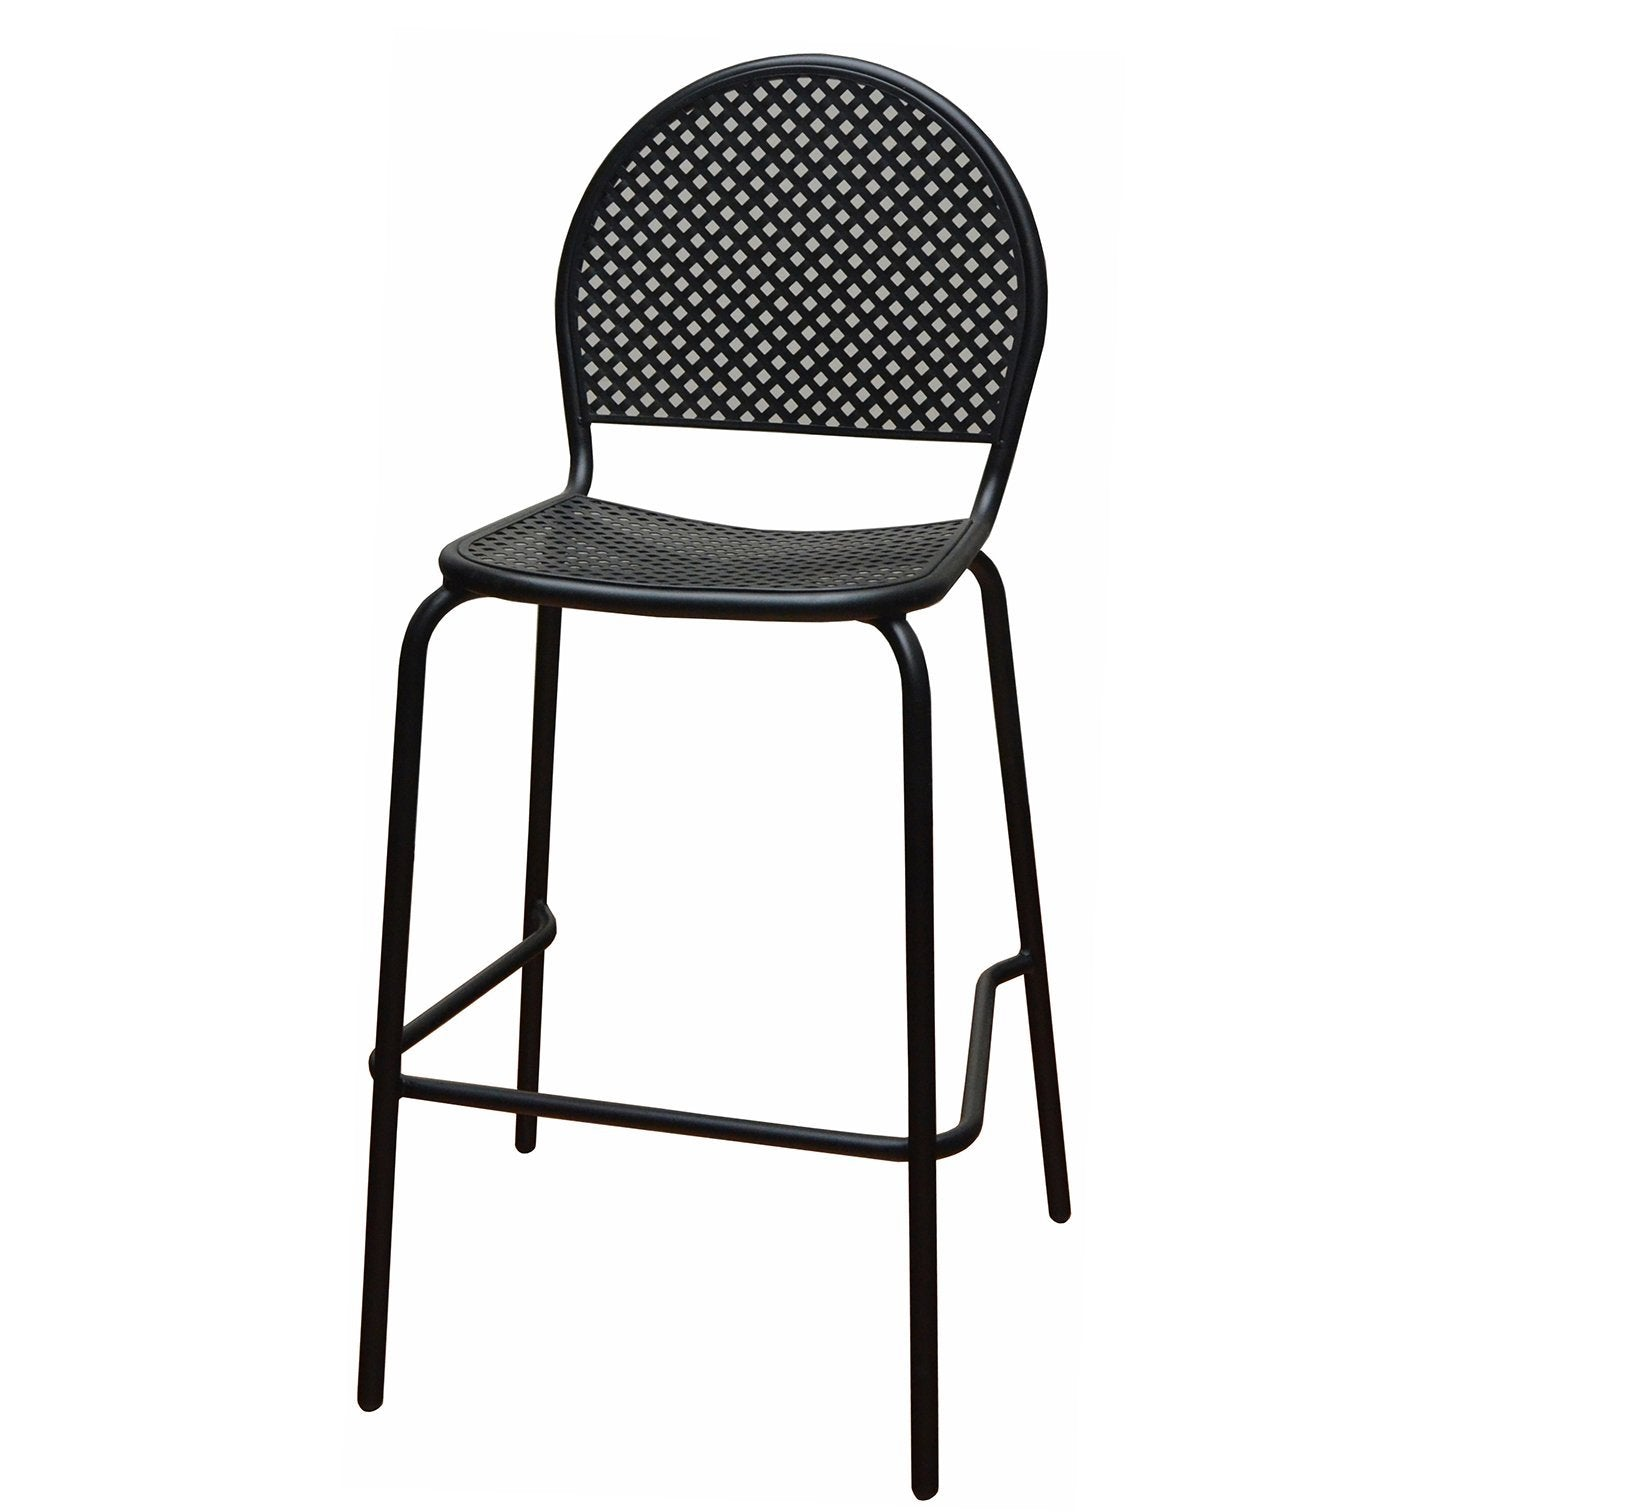 46c413b60e37 DHC 7928B-BLK Stamping Steel Mesh All Steel Patio Chair